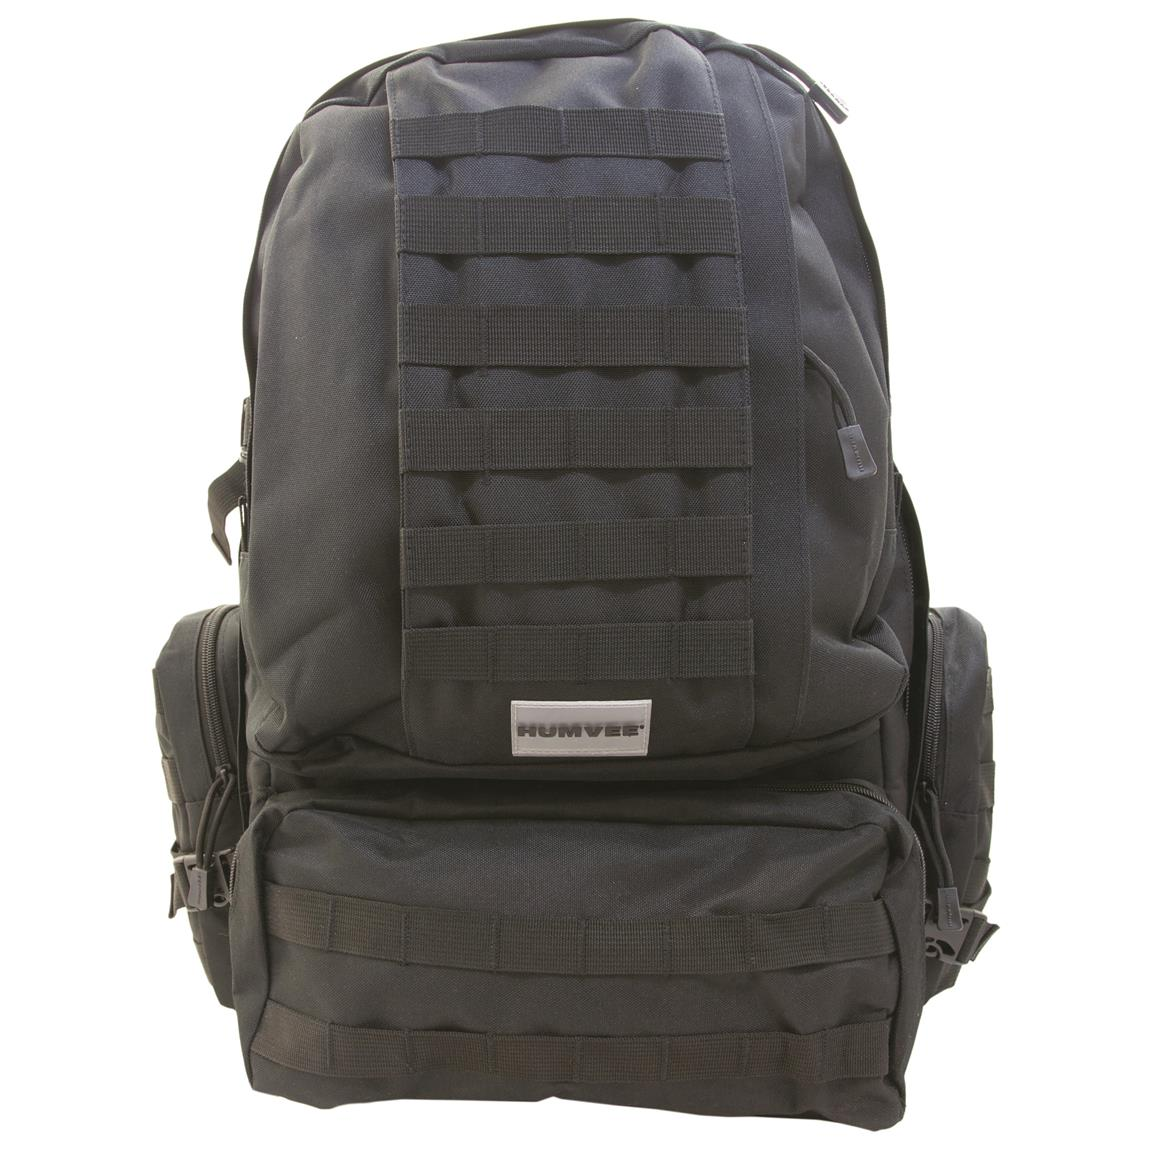 Humvee 3-Day Assault Backpack, Black